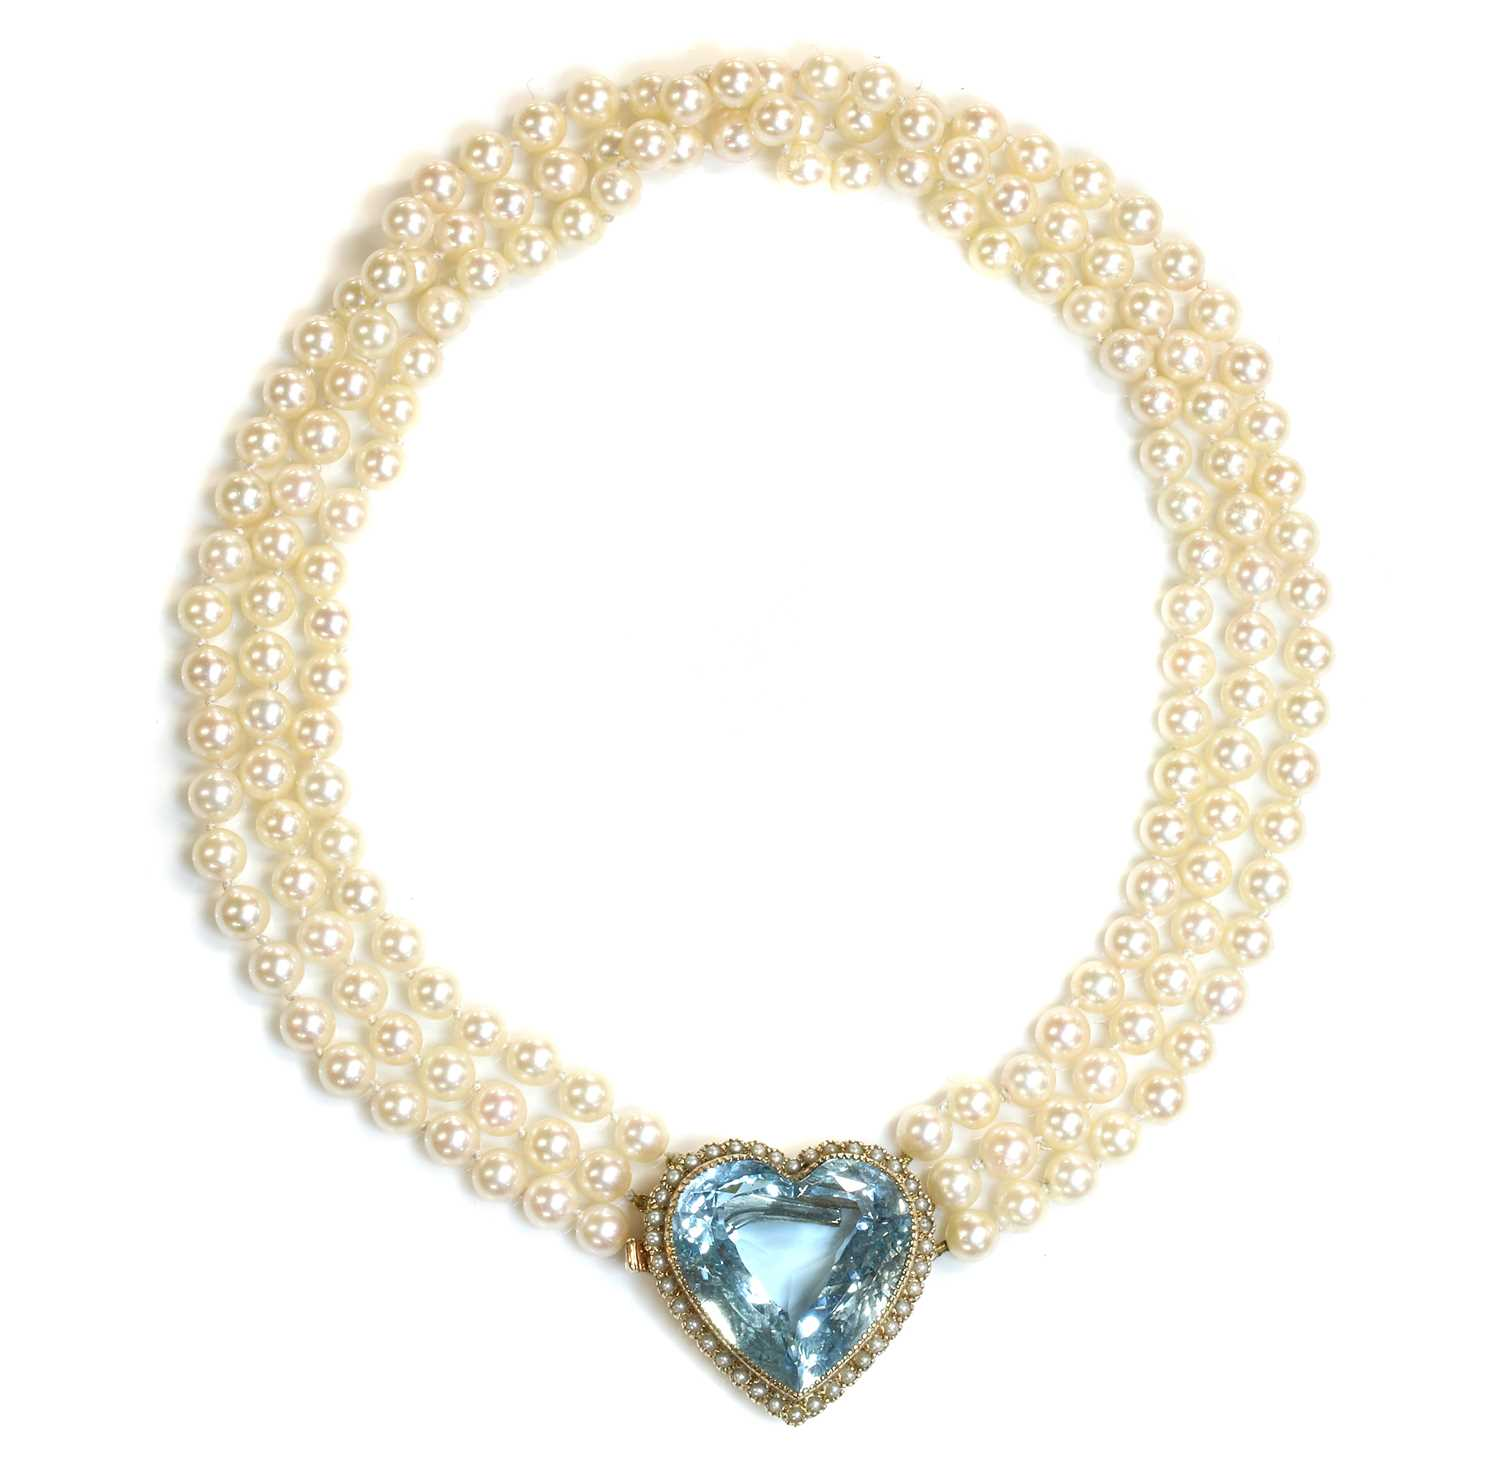 A three row cultured pearl necklace, - Image 3 of 7